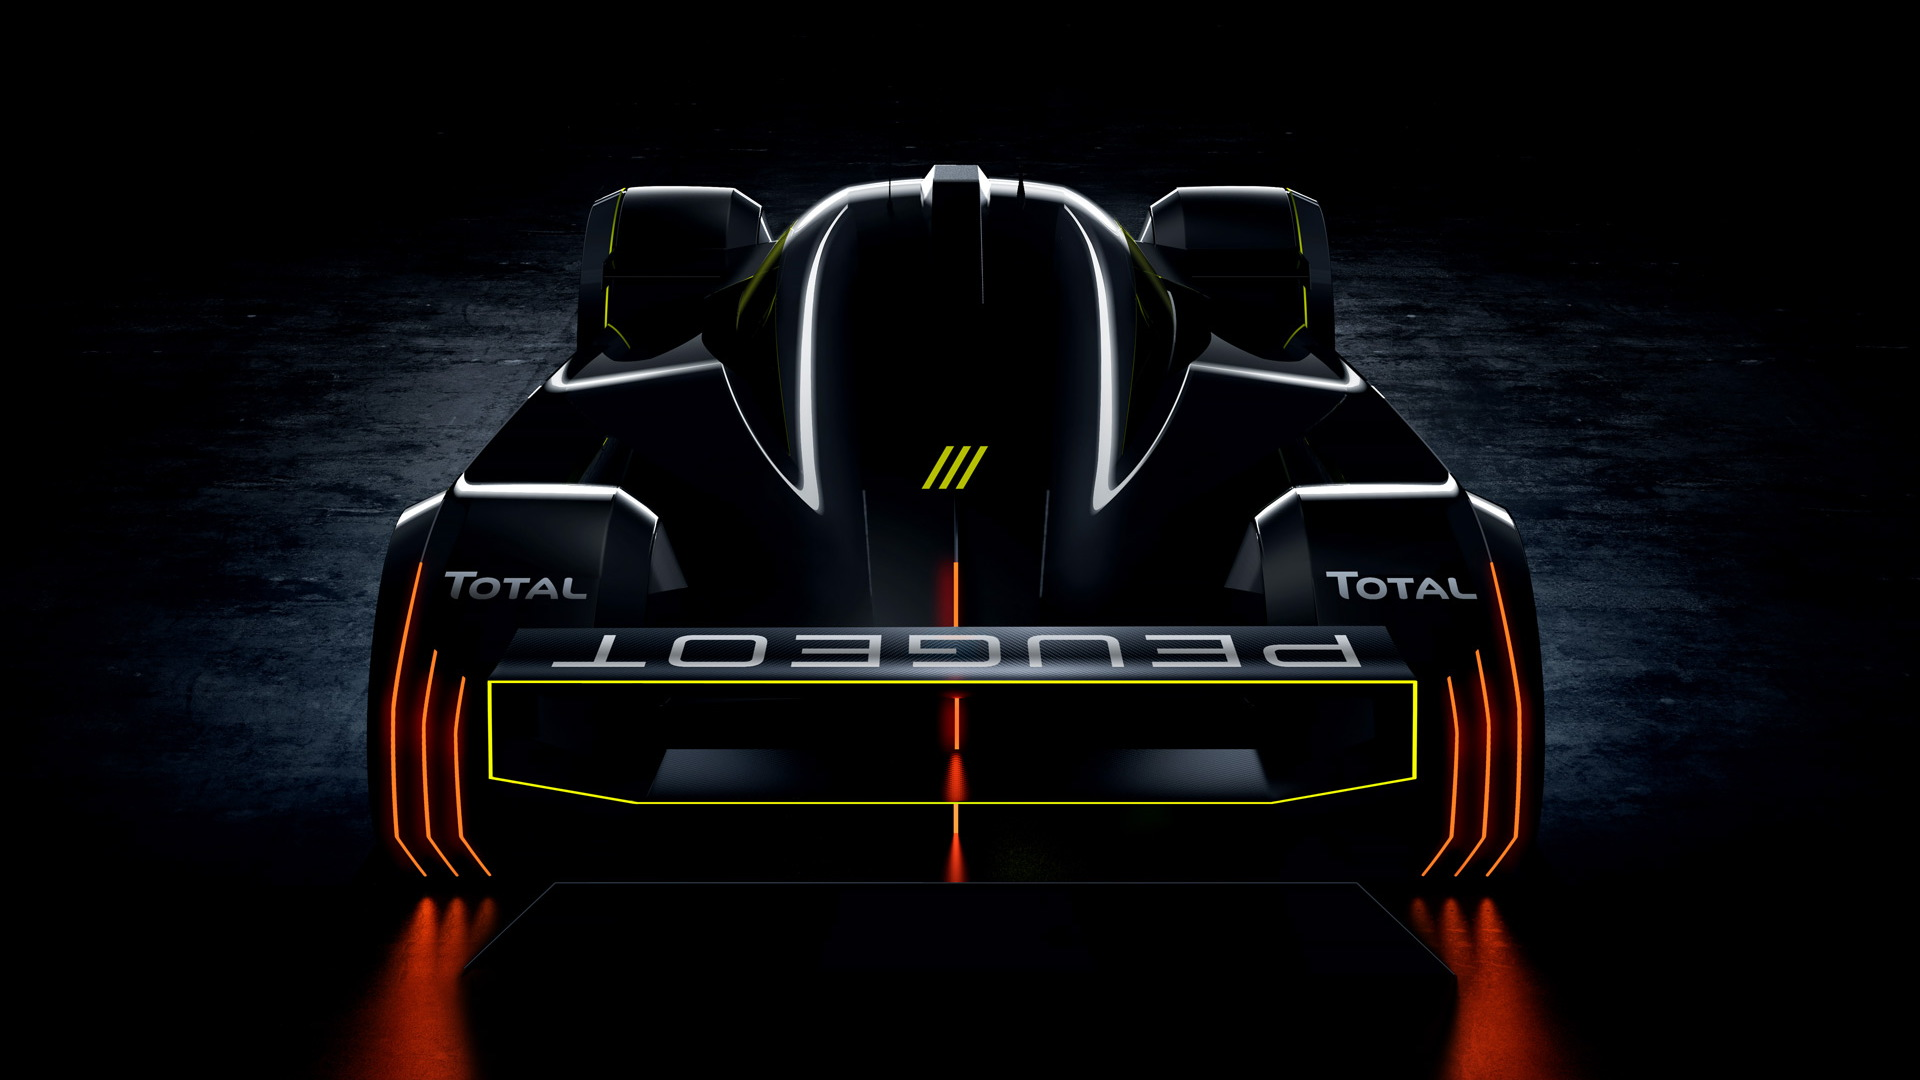 Teaser for 2022 Peugeot Le Mans Hypercar race car